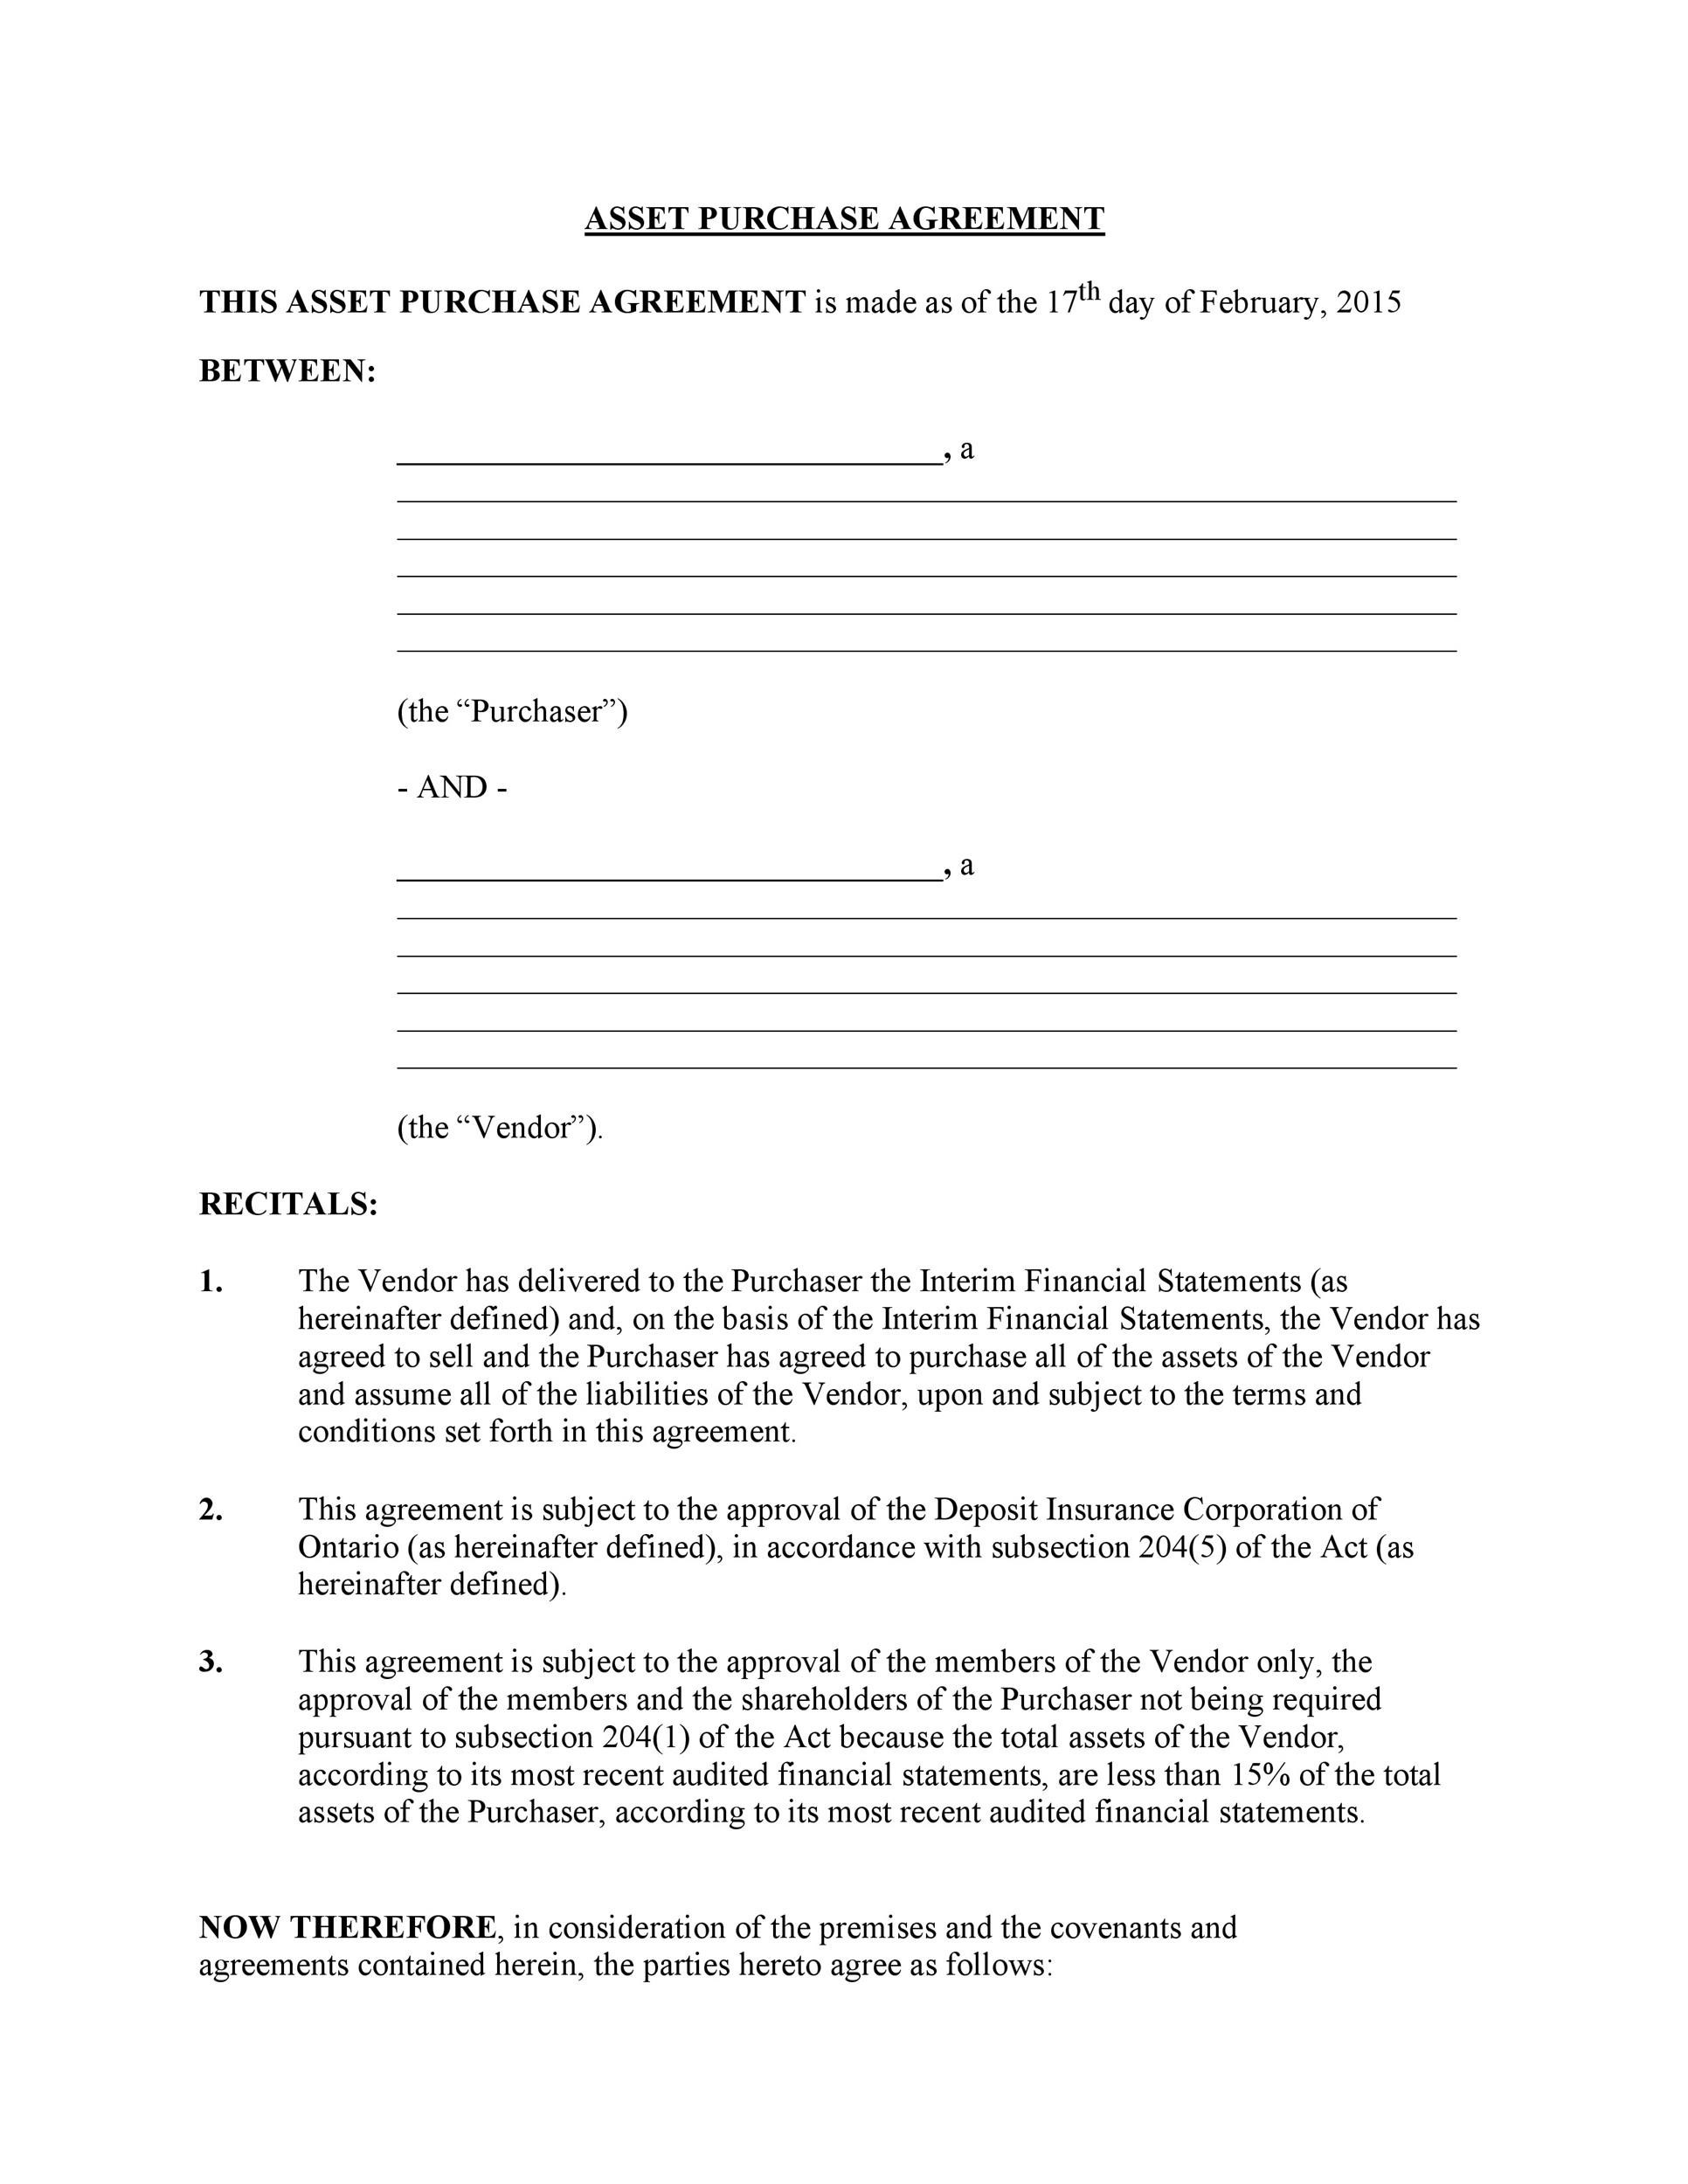 Free Purchase Agreement Template 30